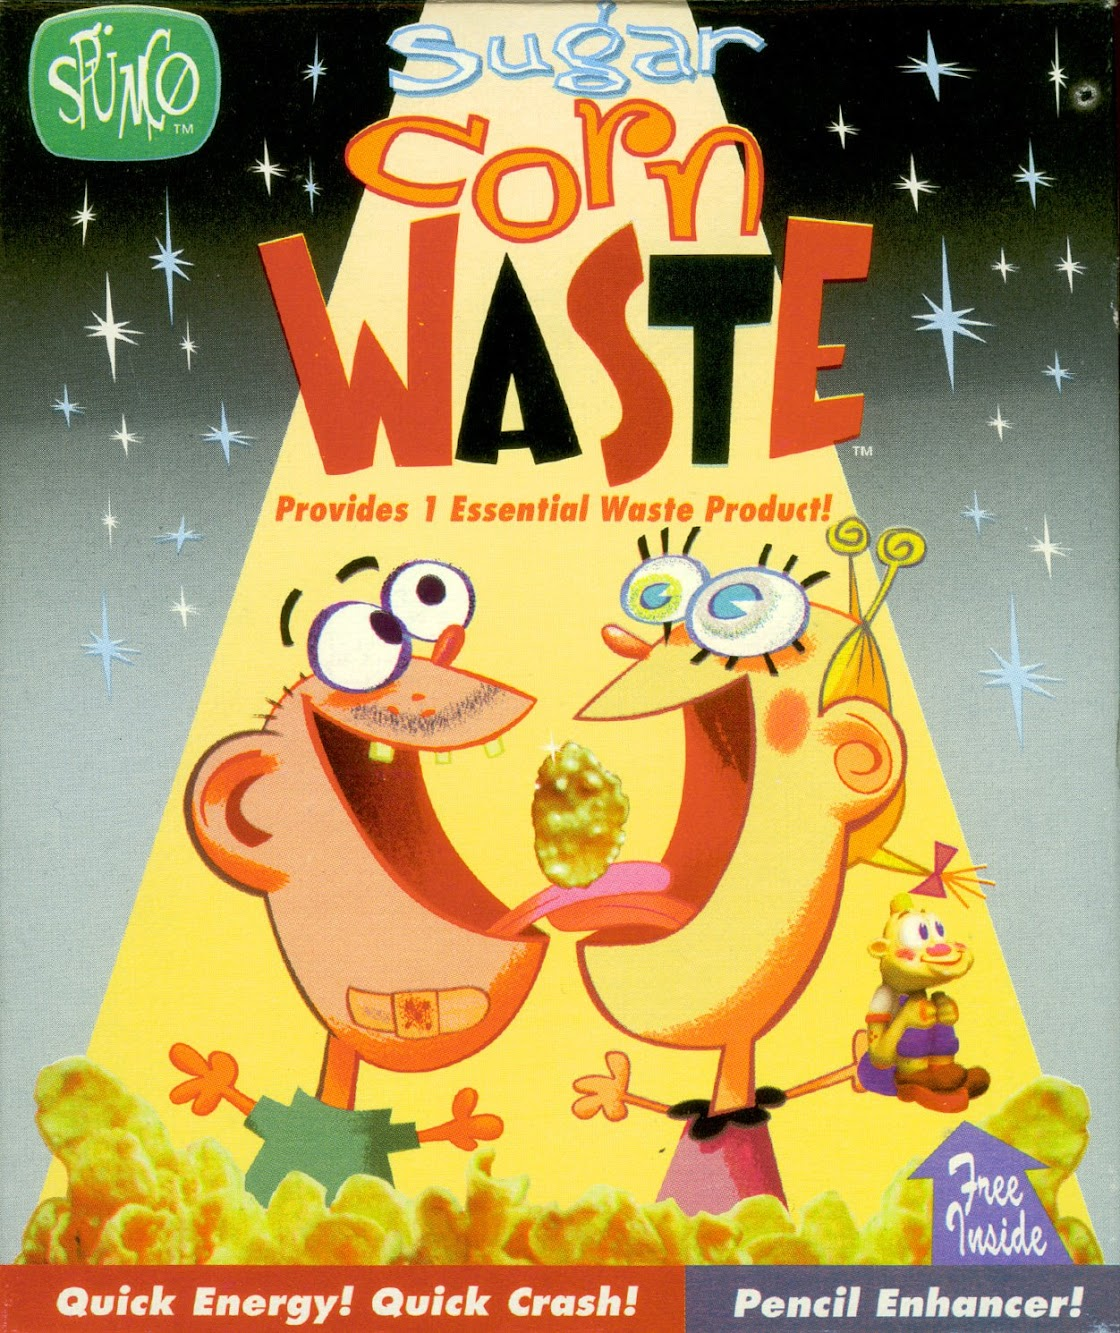 Sugar Corn Waste